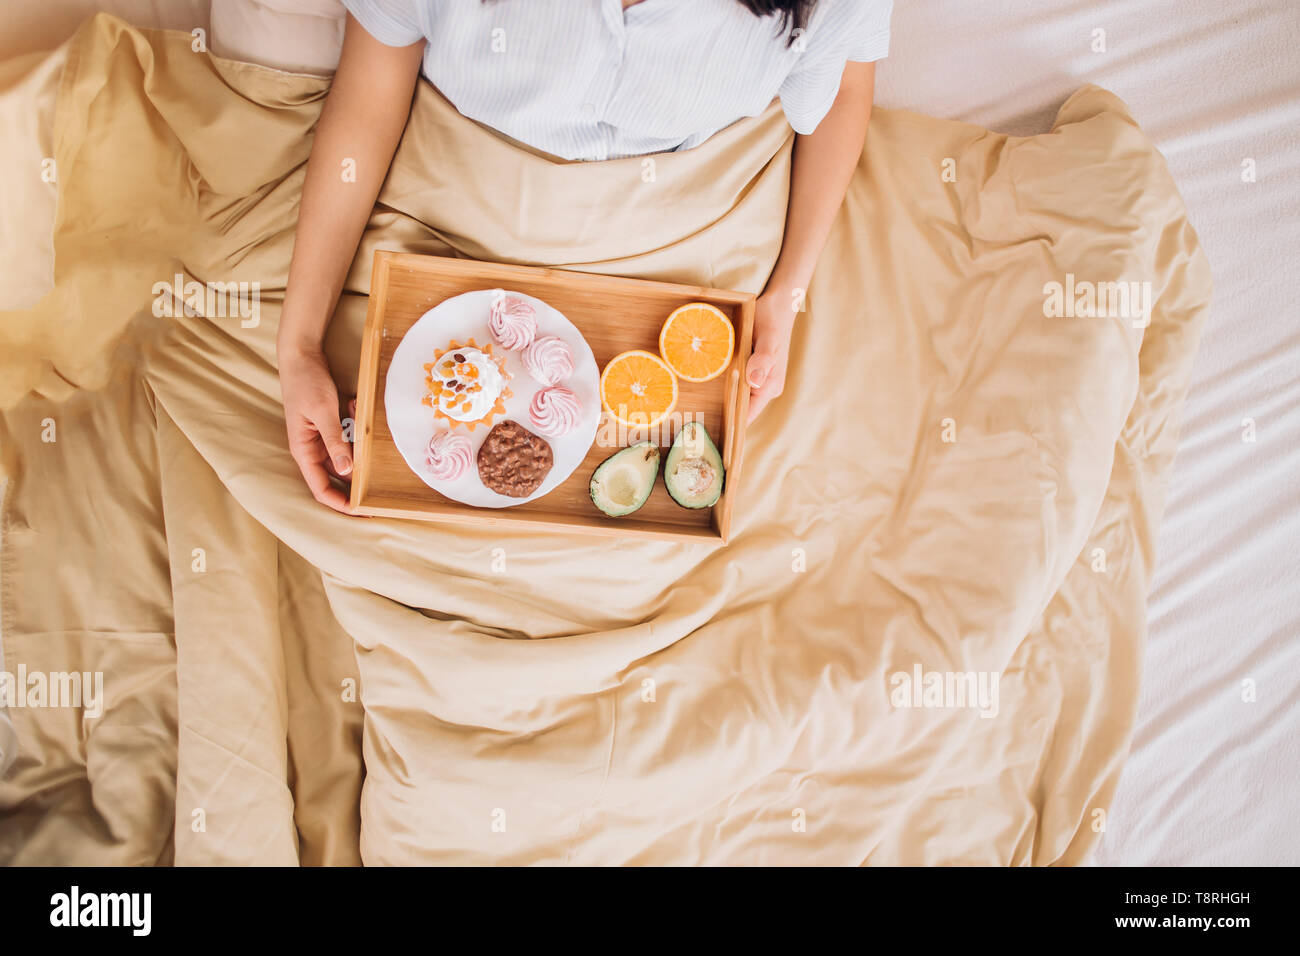 Cropped photo of woman sitting in bed with cream color blanket and having breakfast. Top view. Healthy and tasty breakfast, meal, food, morning, home  - Stock Image